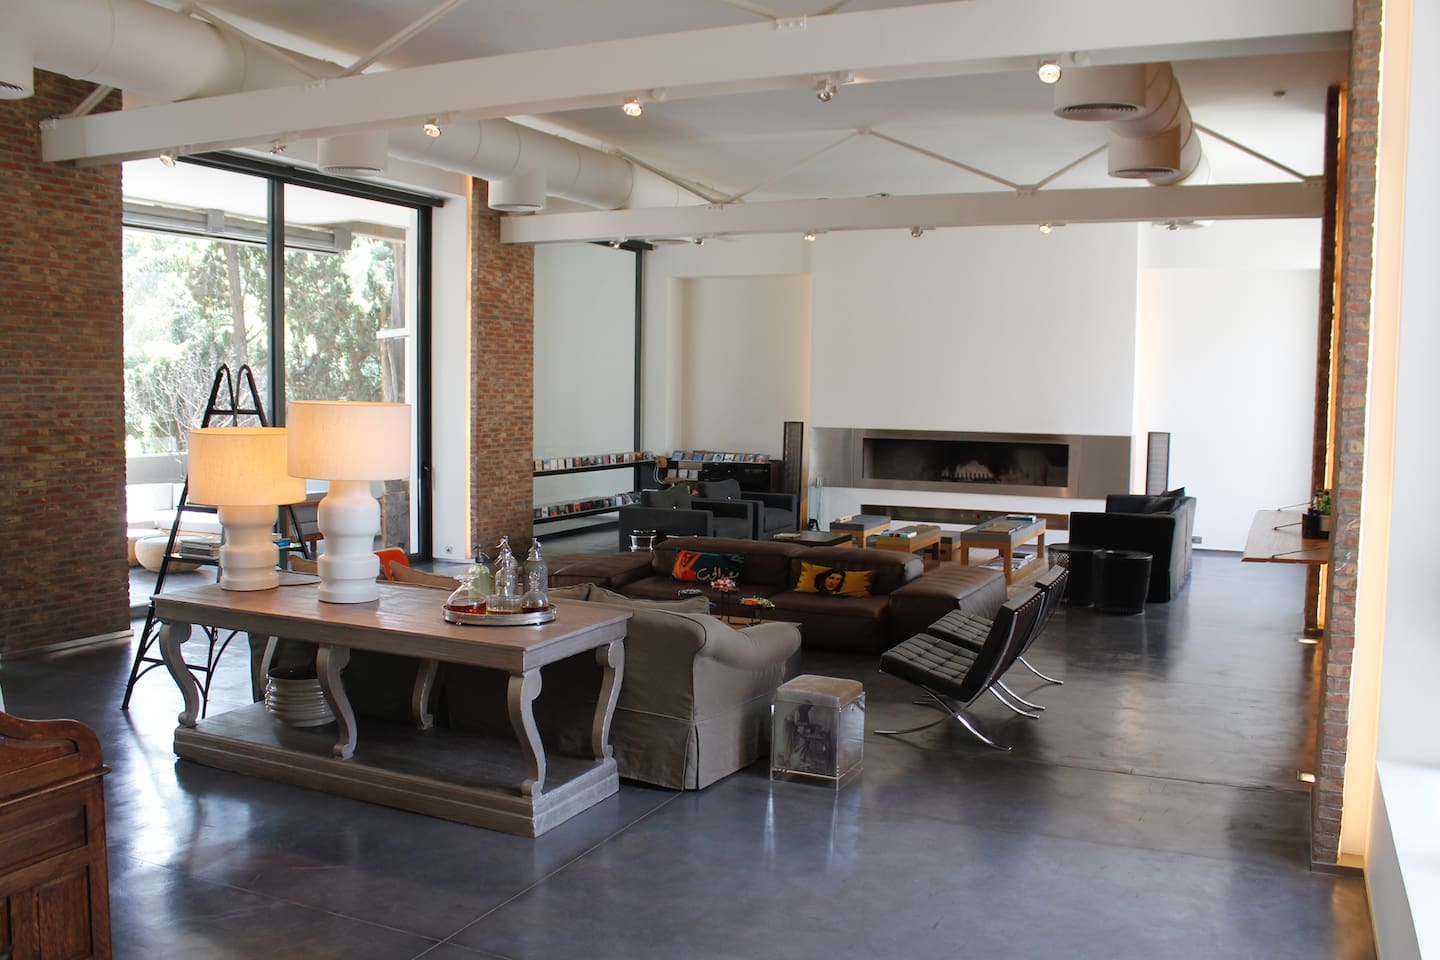 Stunning high ceilings and a wide open space fit for all occasions